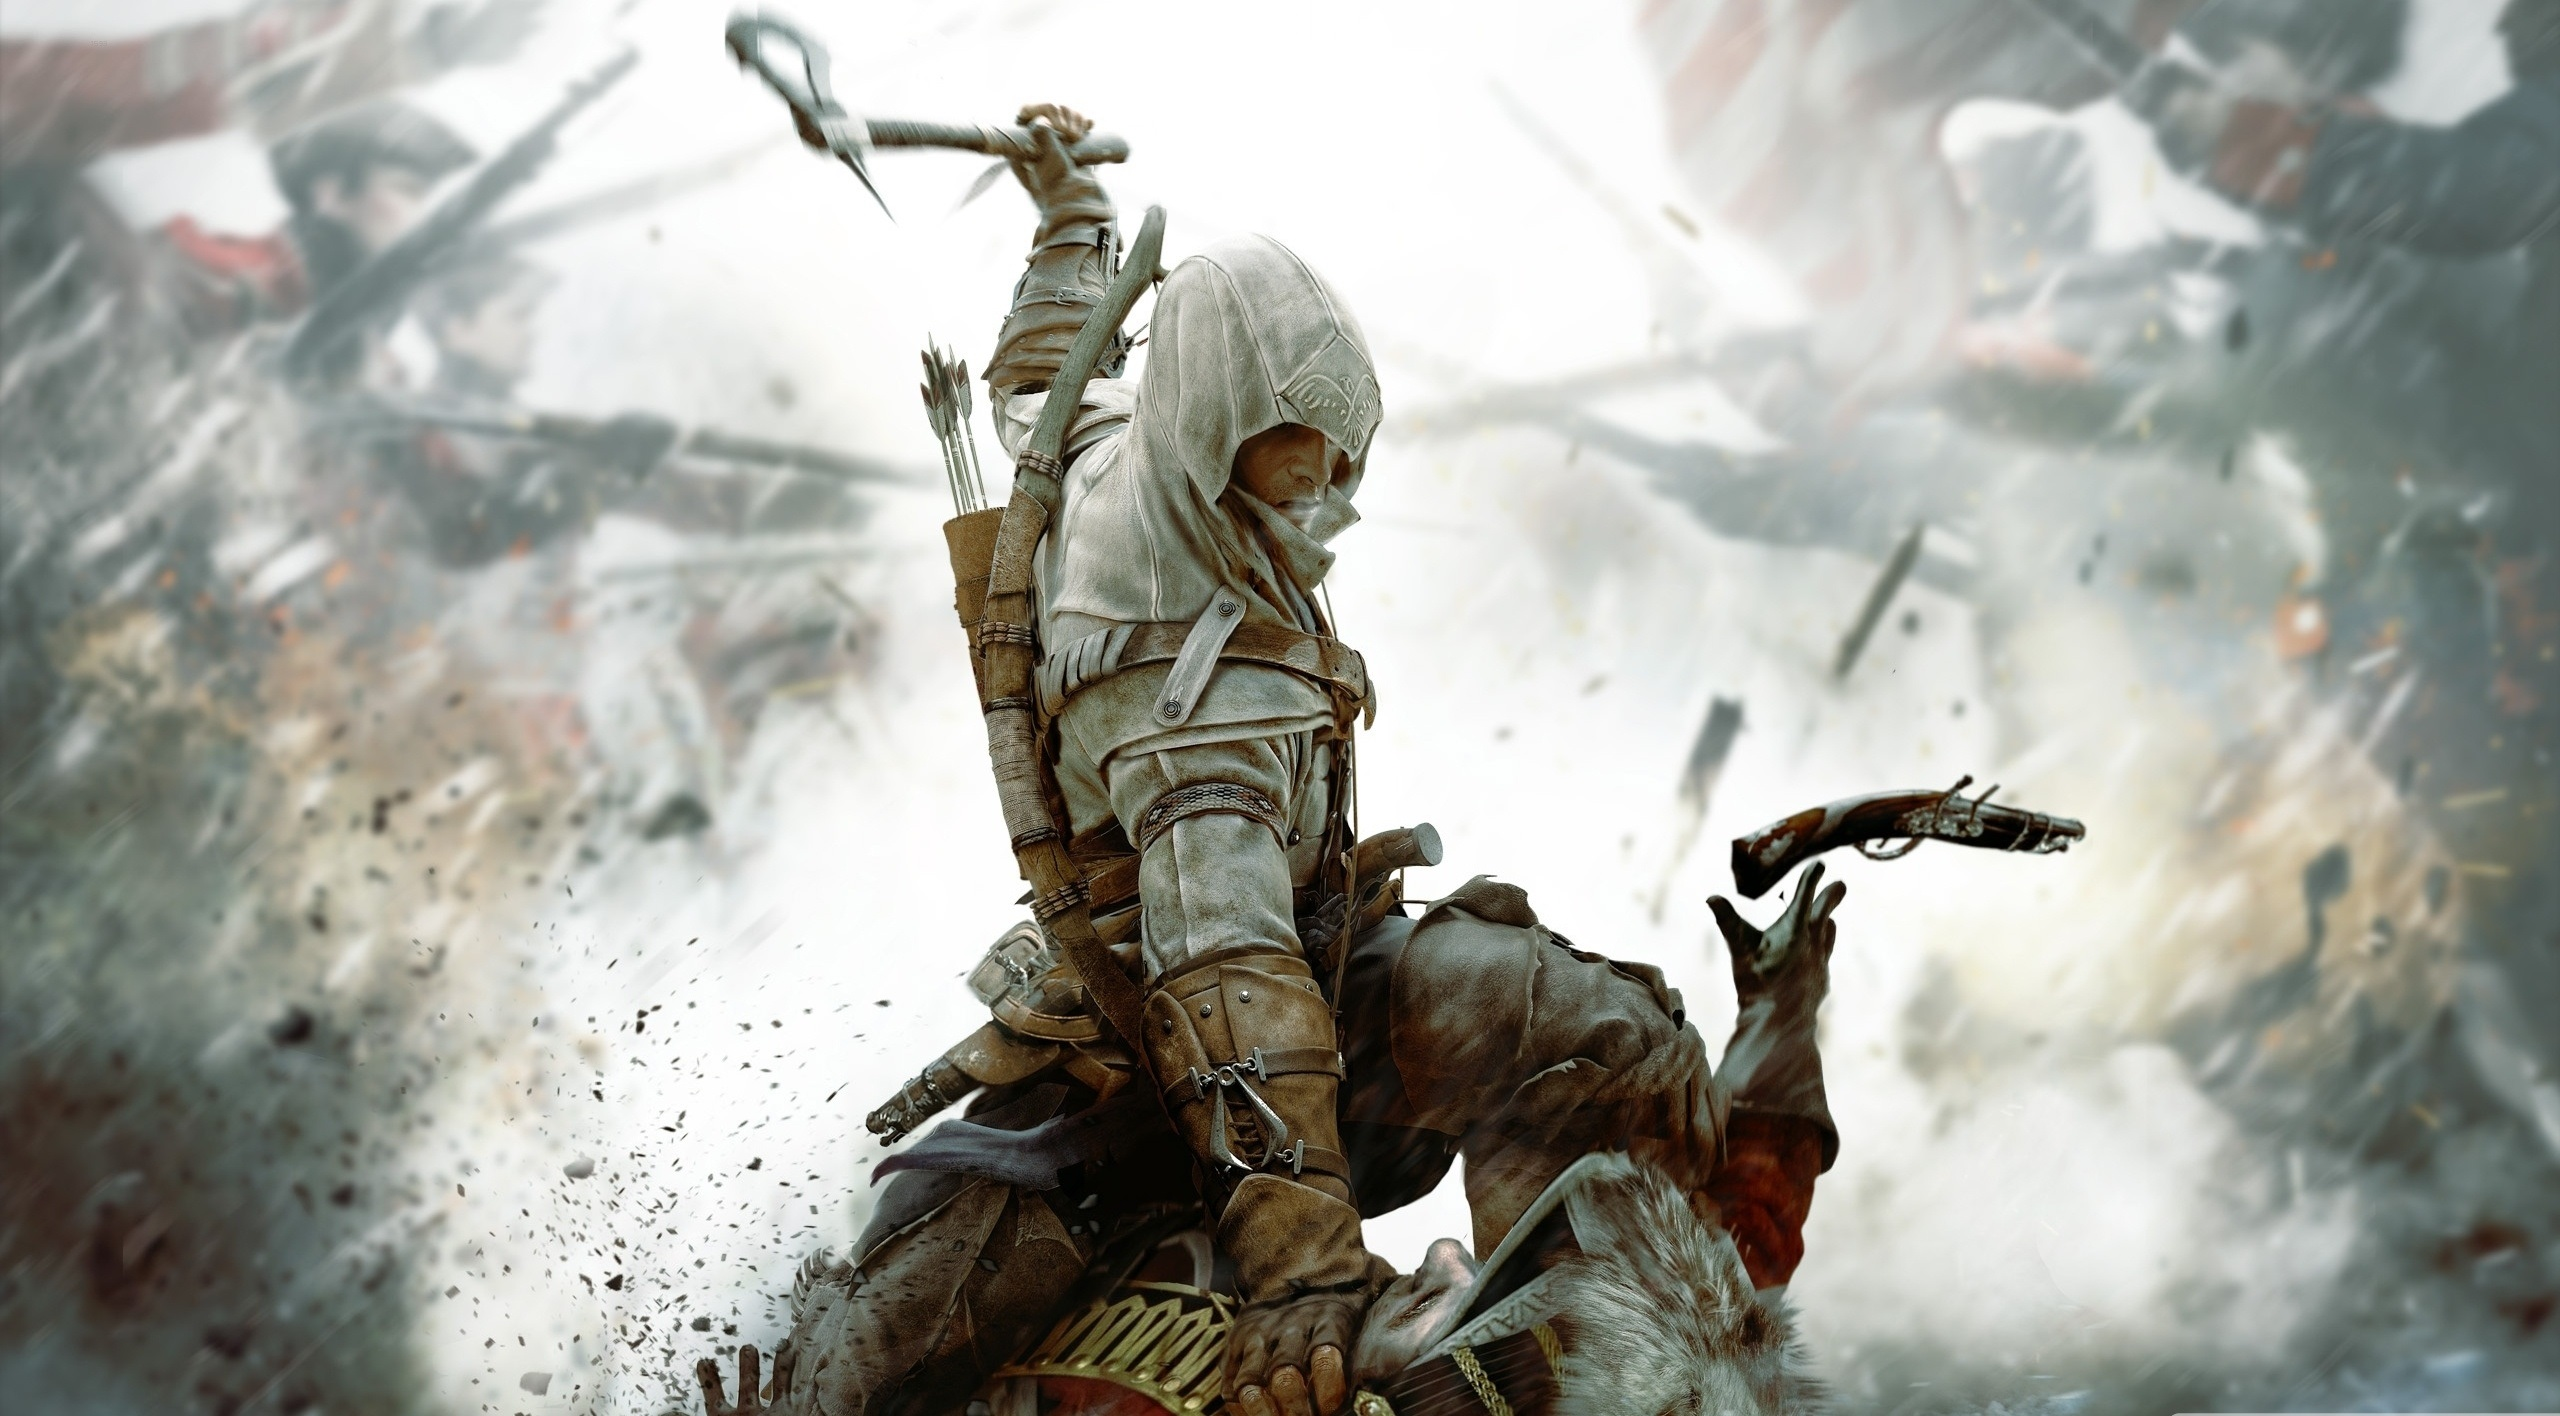 Assassins Creed Iii Wallpapers Hd Wallpapers